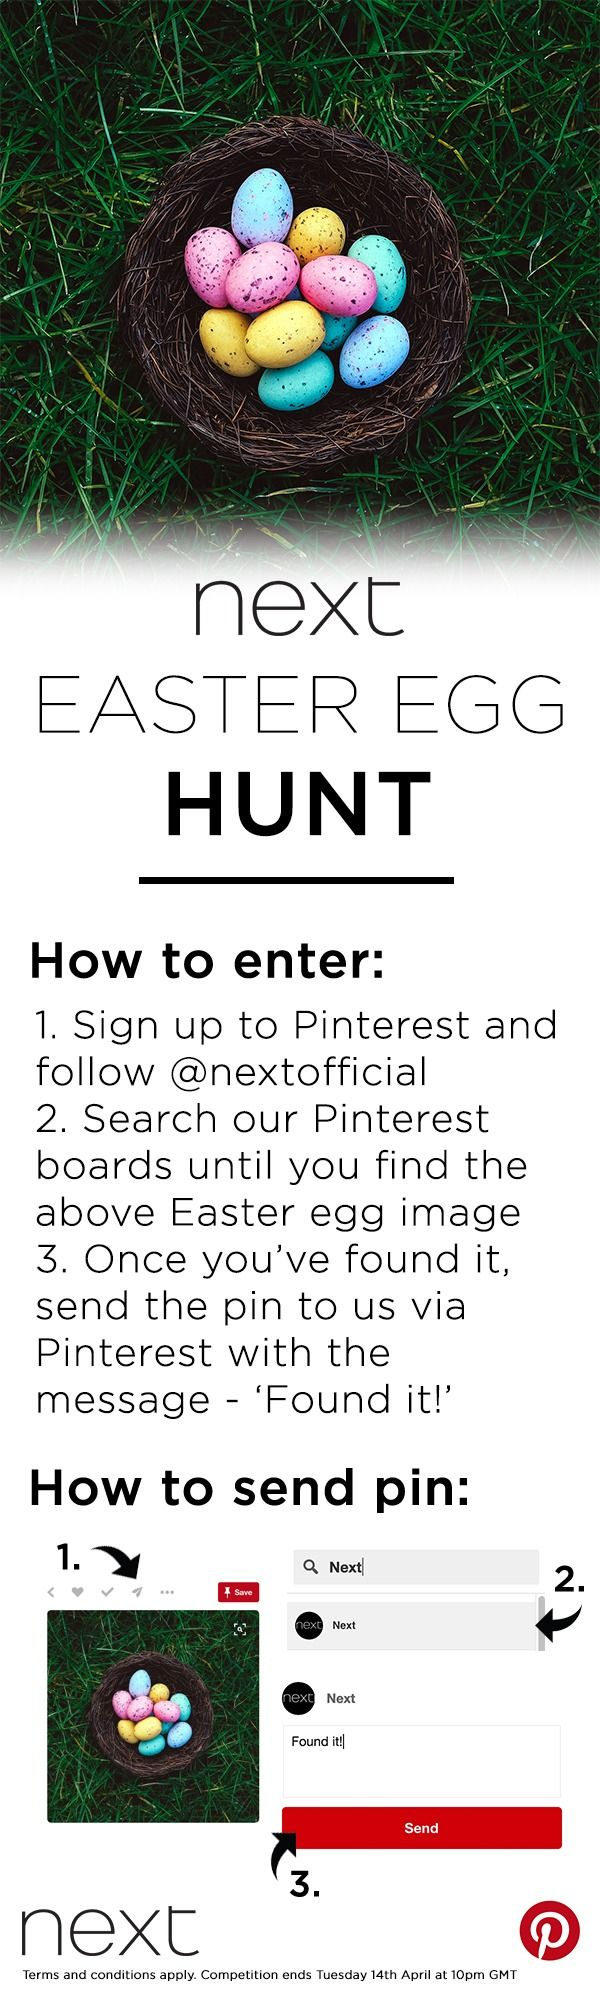 The hunt is on to WIN £250 to spend on Next.co.uk! Whether you'd love a wardrobe update or interior refresh, hunt our Pinterest boards for the missing Easter egg image above and send it to us via direct message! Comp ends 14thth April. Tap the image for T&Cs.